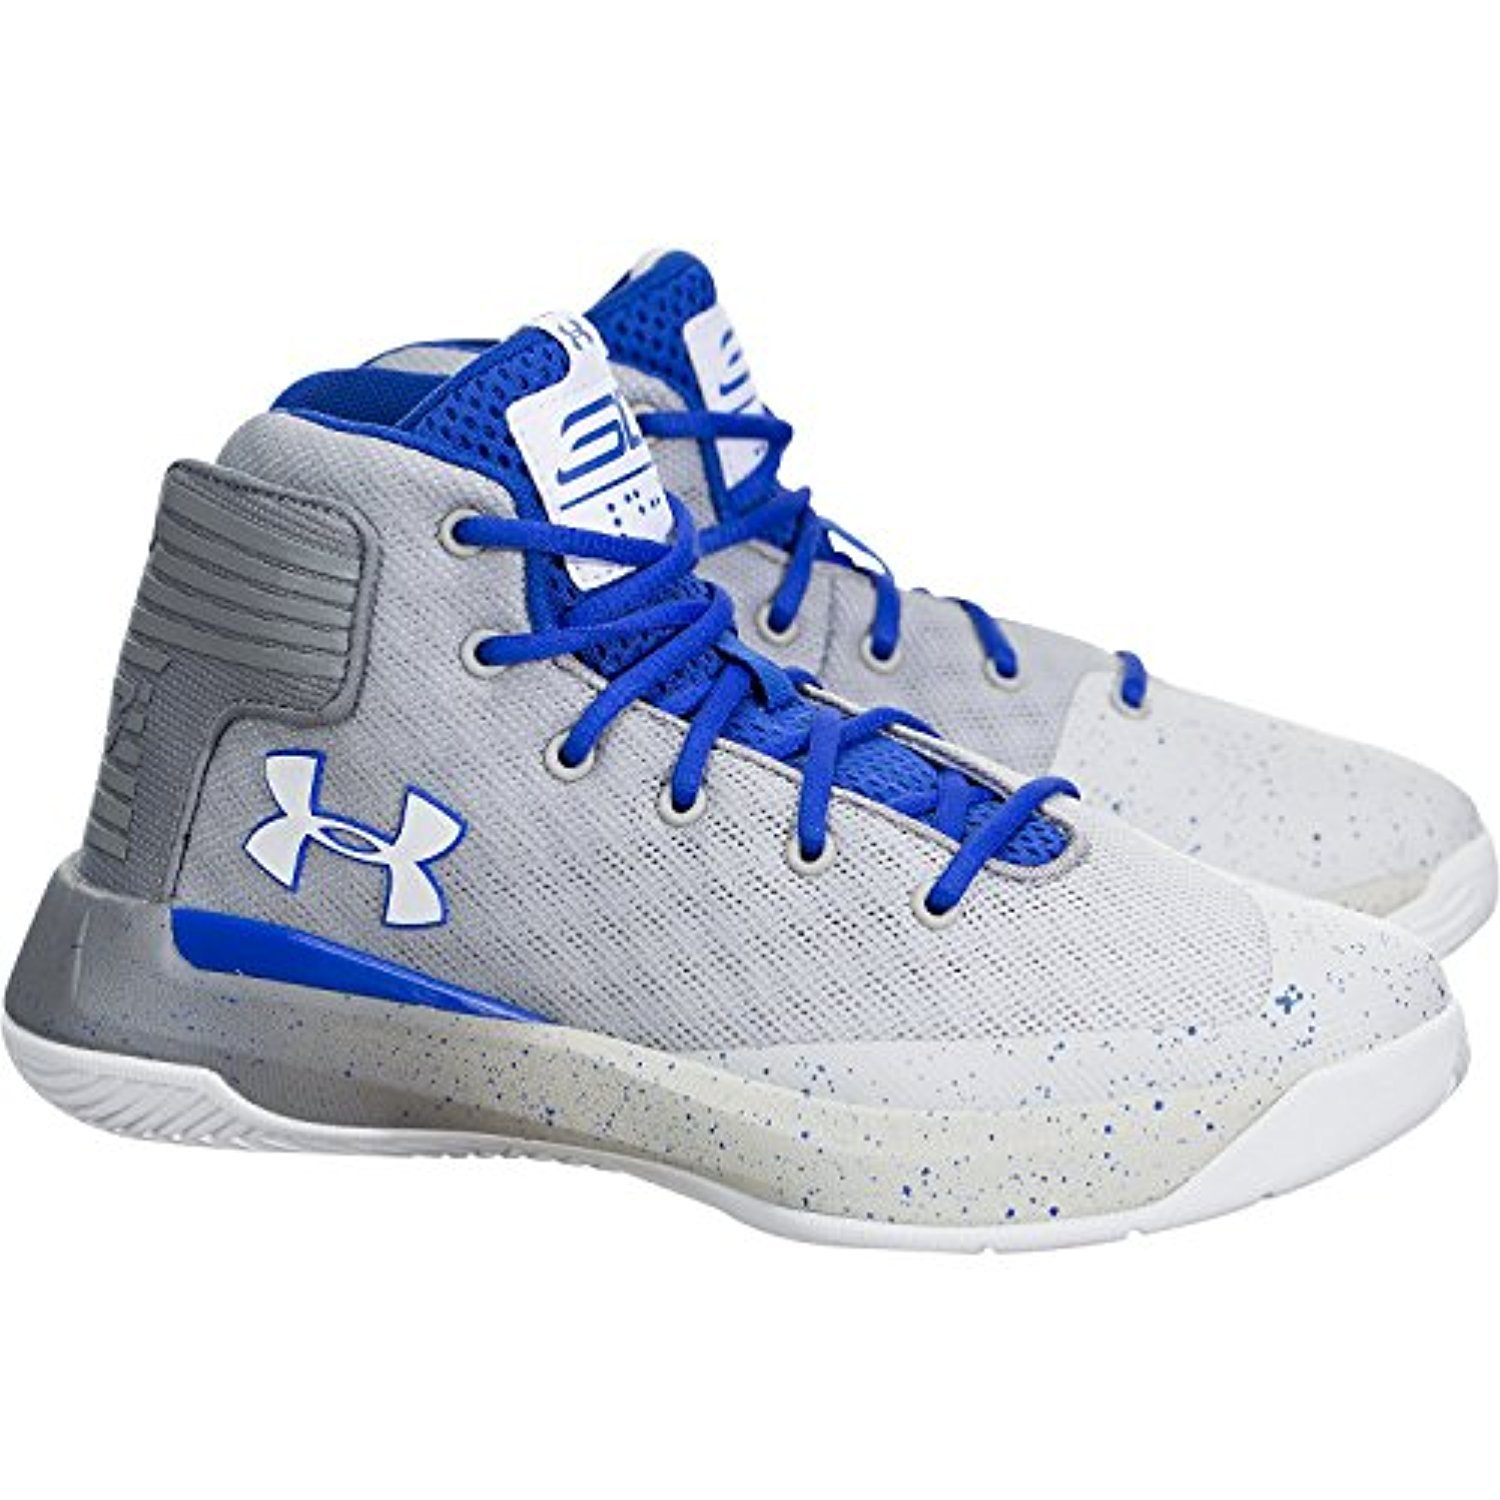 differently d5f35 89b9d Amazon.com: Under Armour Curry 3Zer0 (Preschool) White/Blue ...